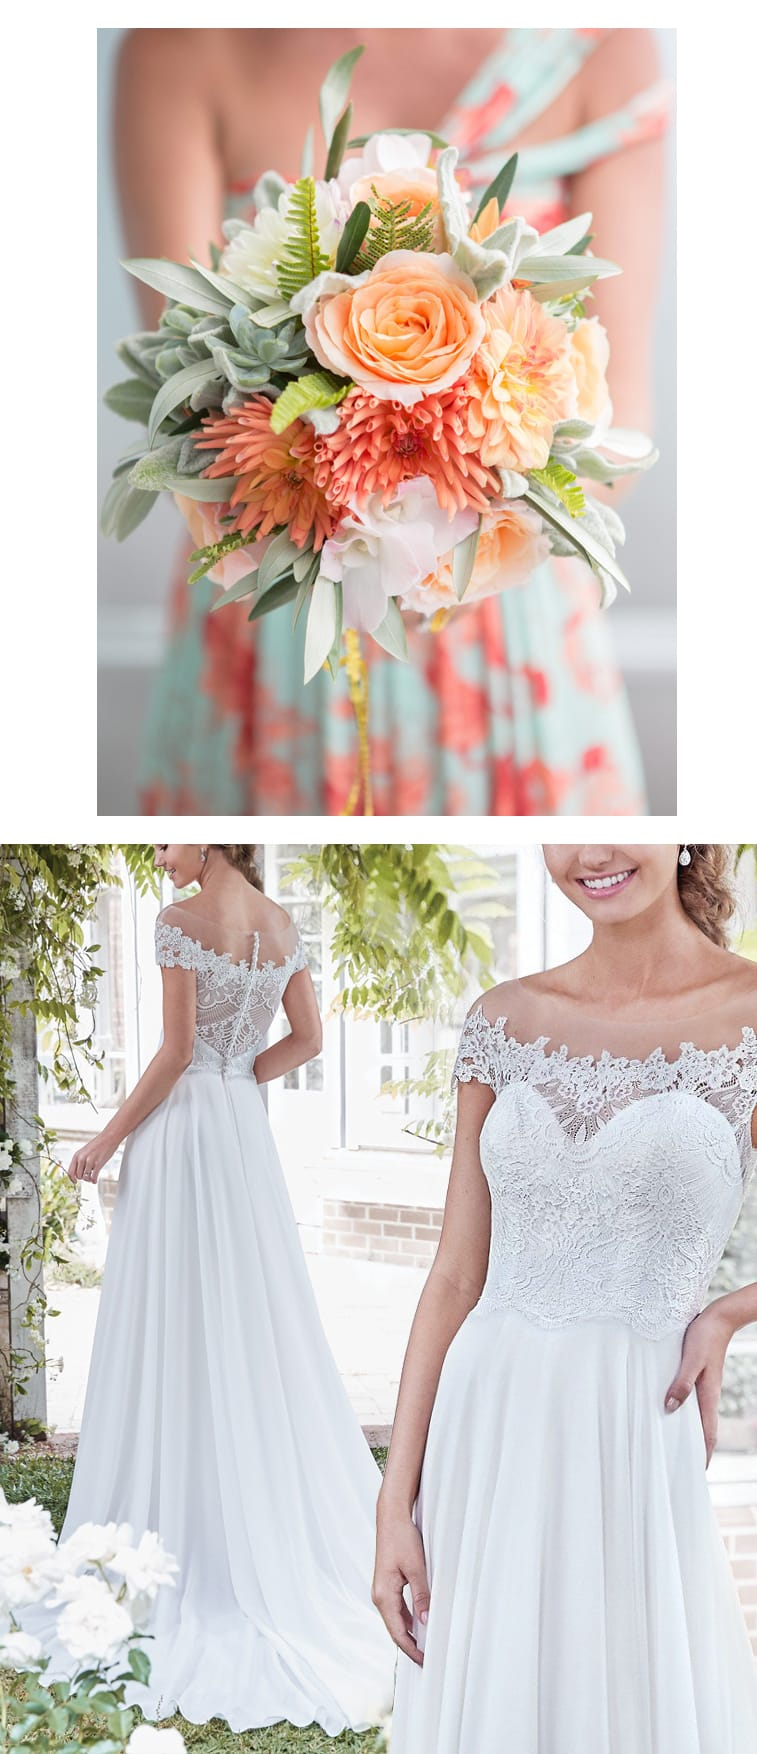 9 Bouquets For Your Boho Wedding Gown - Flirty chiffon wedding dress for boho wedding Beatrice by Rebecca Ingram. Paired with peach and coral bouquet. Photo: Amanda Thomas Photography | Bouquet/Florist: Blush